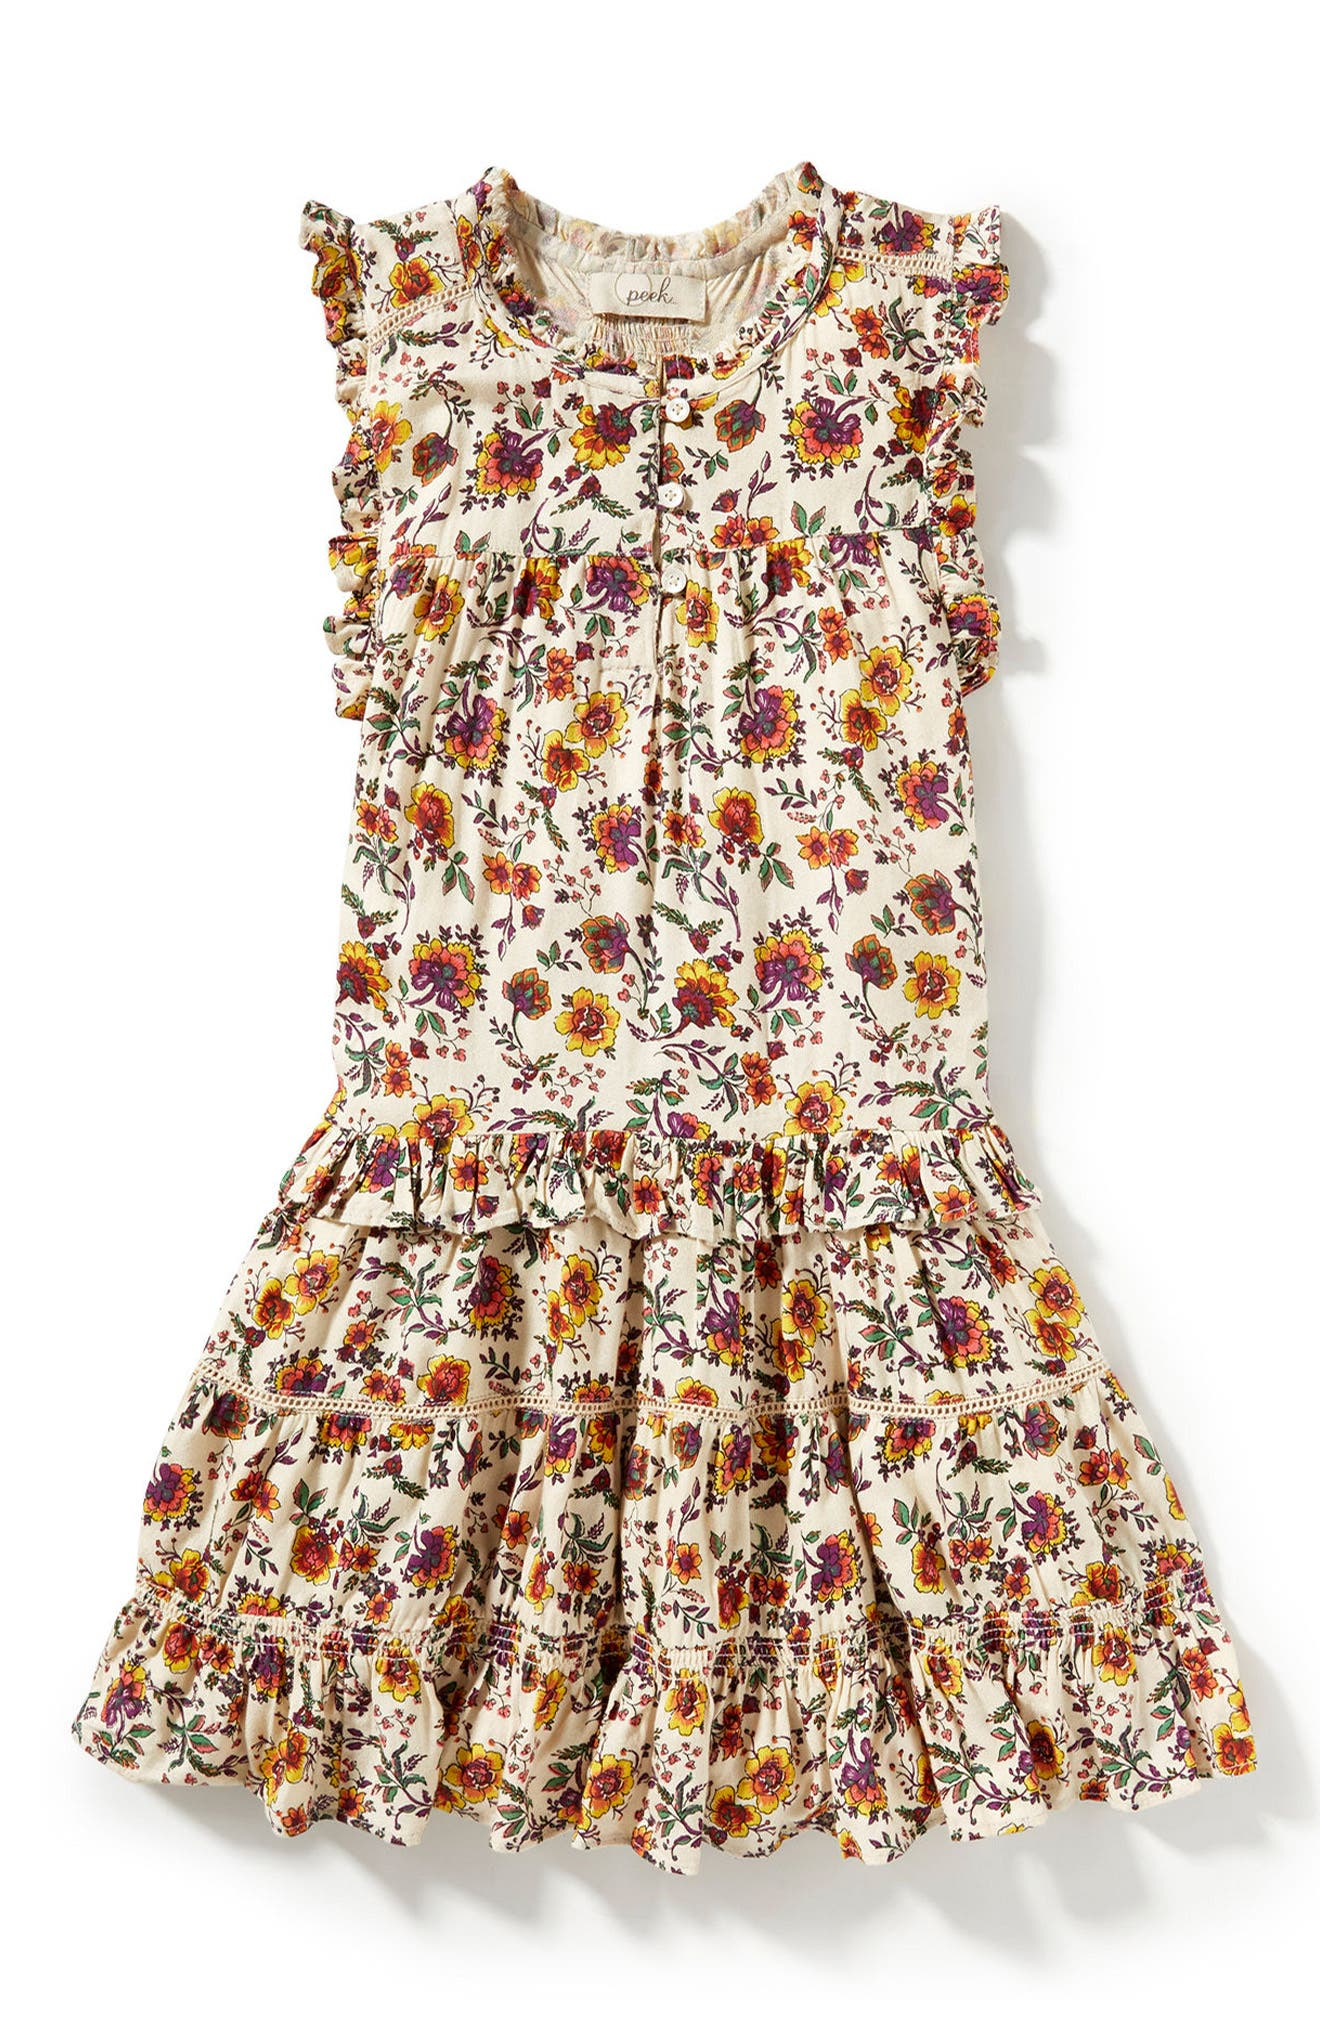 Peek Natalie Print Dress (Toddler Girls, Little Girls & Big Girls)